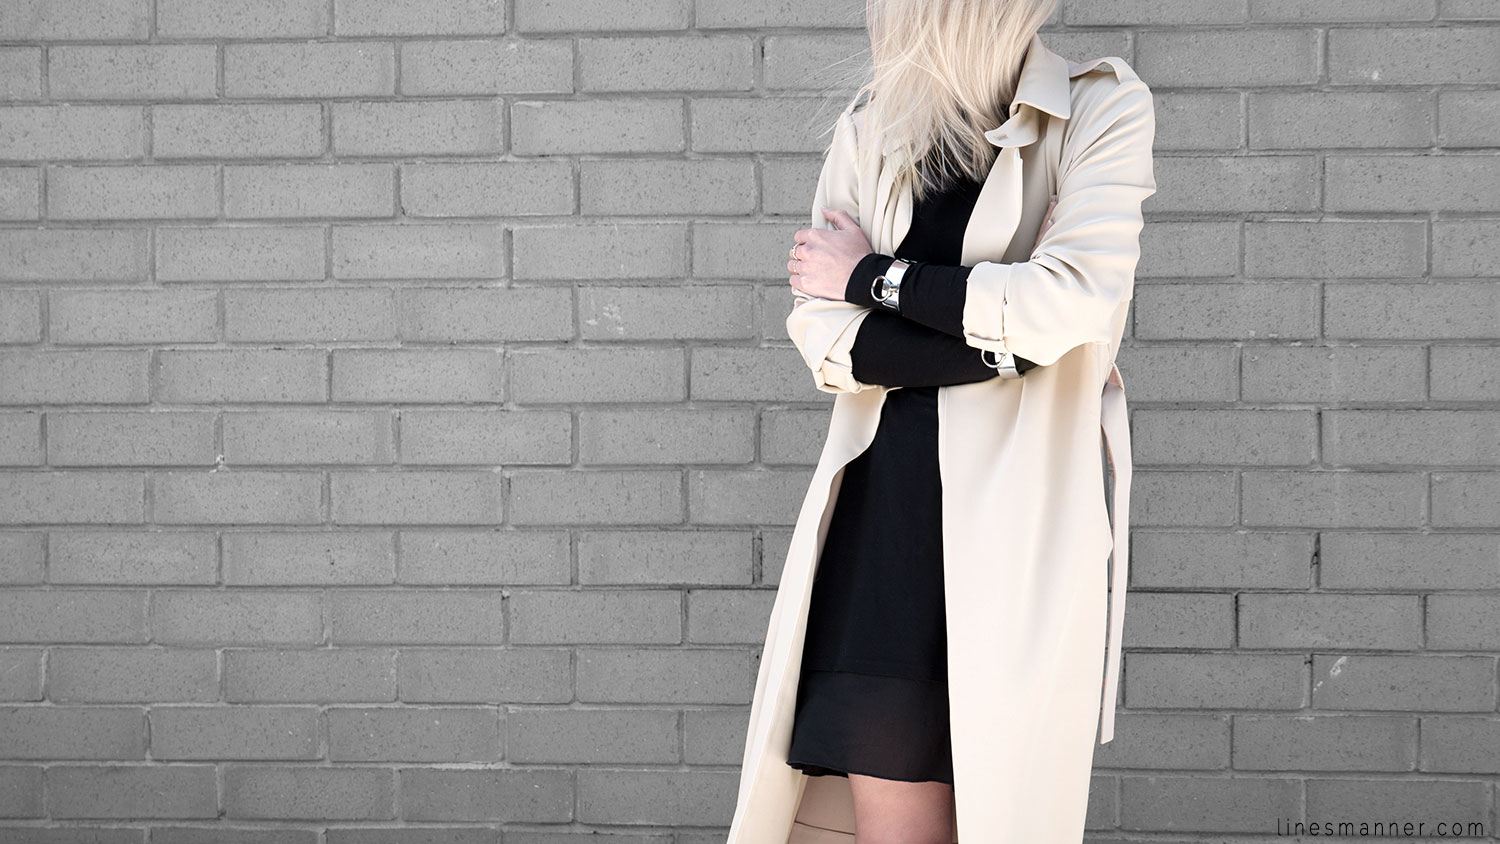 Lines-Manner-Trench-Minimal-Outfits-Fashion-Essentials-Classics-Timeless-Versatile-Details-Hues-Nonchalance-Elegance-Casual-Effortless-3